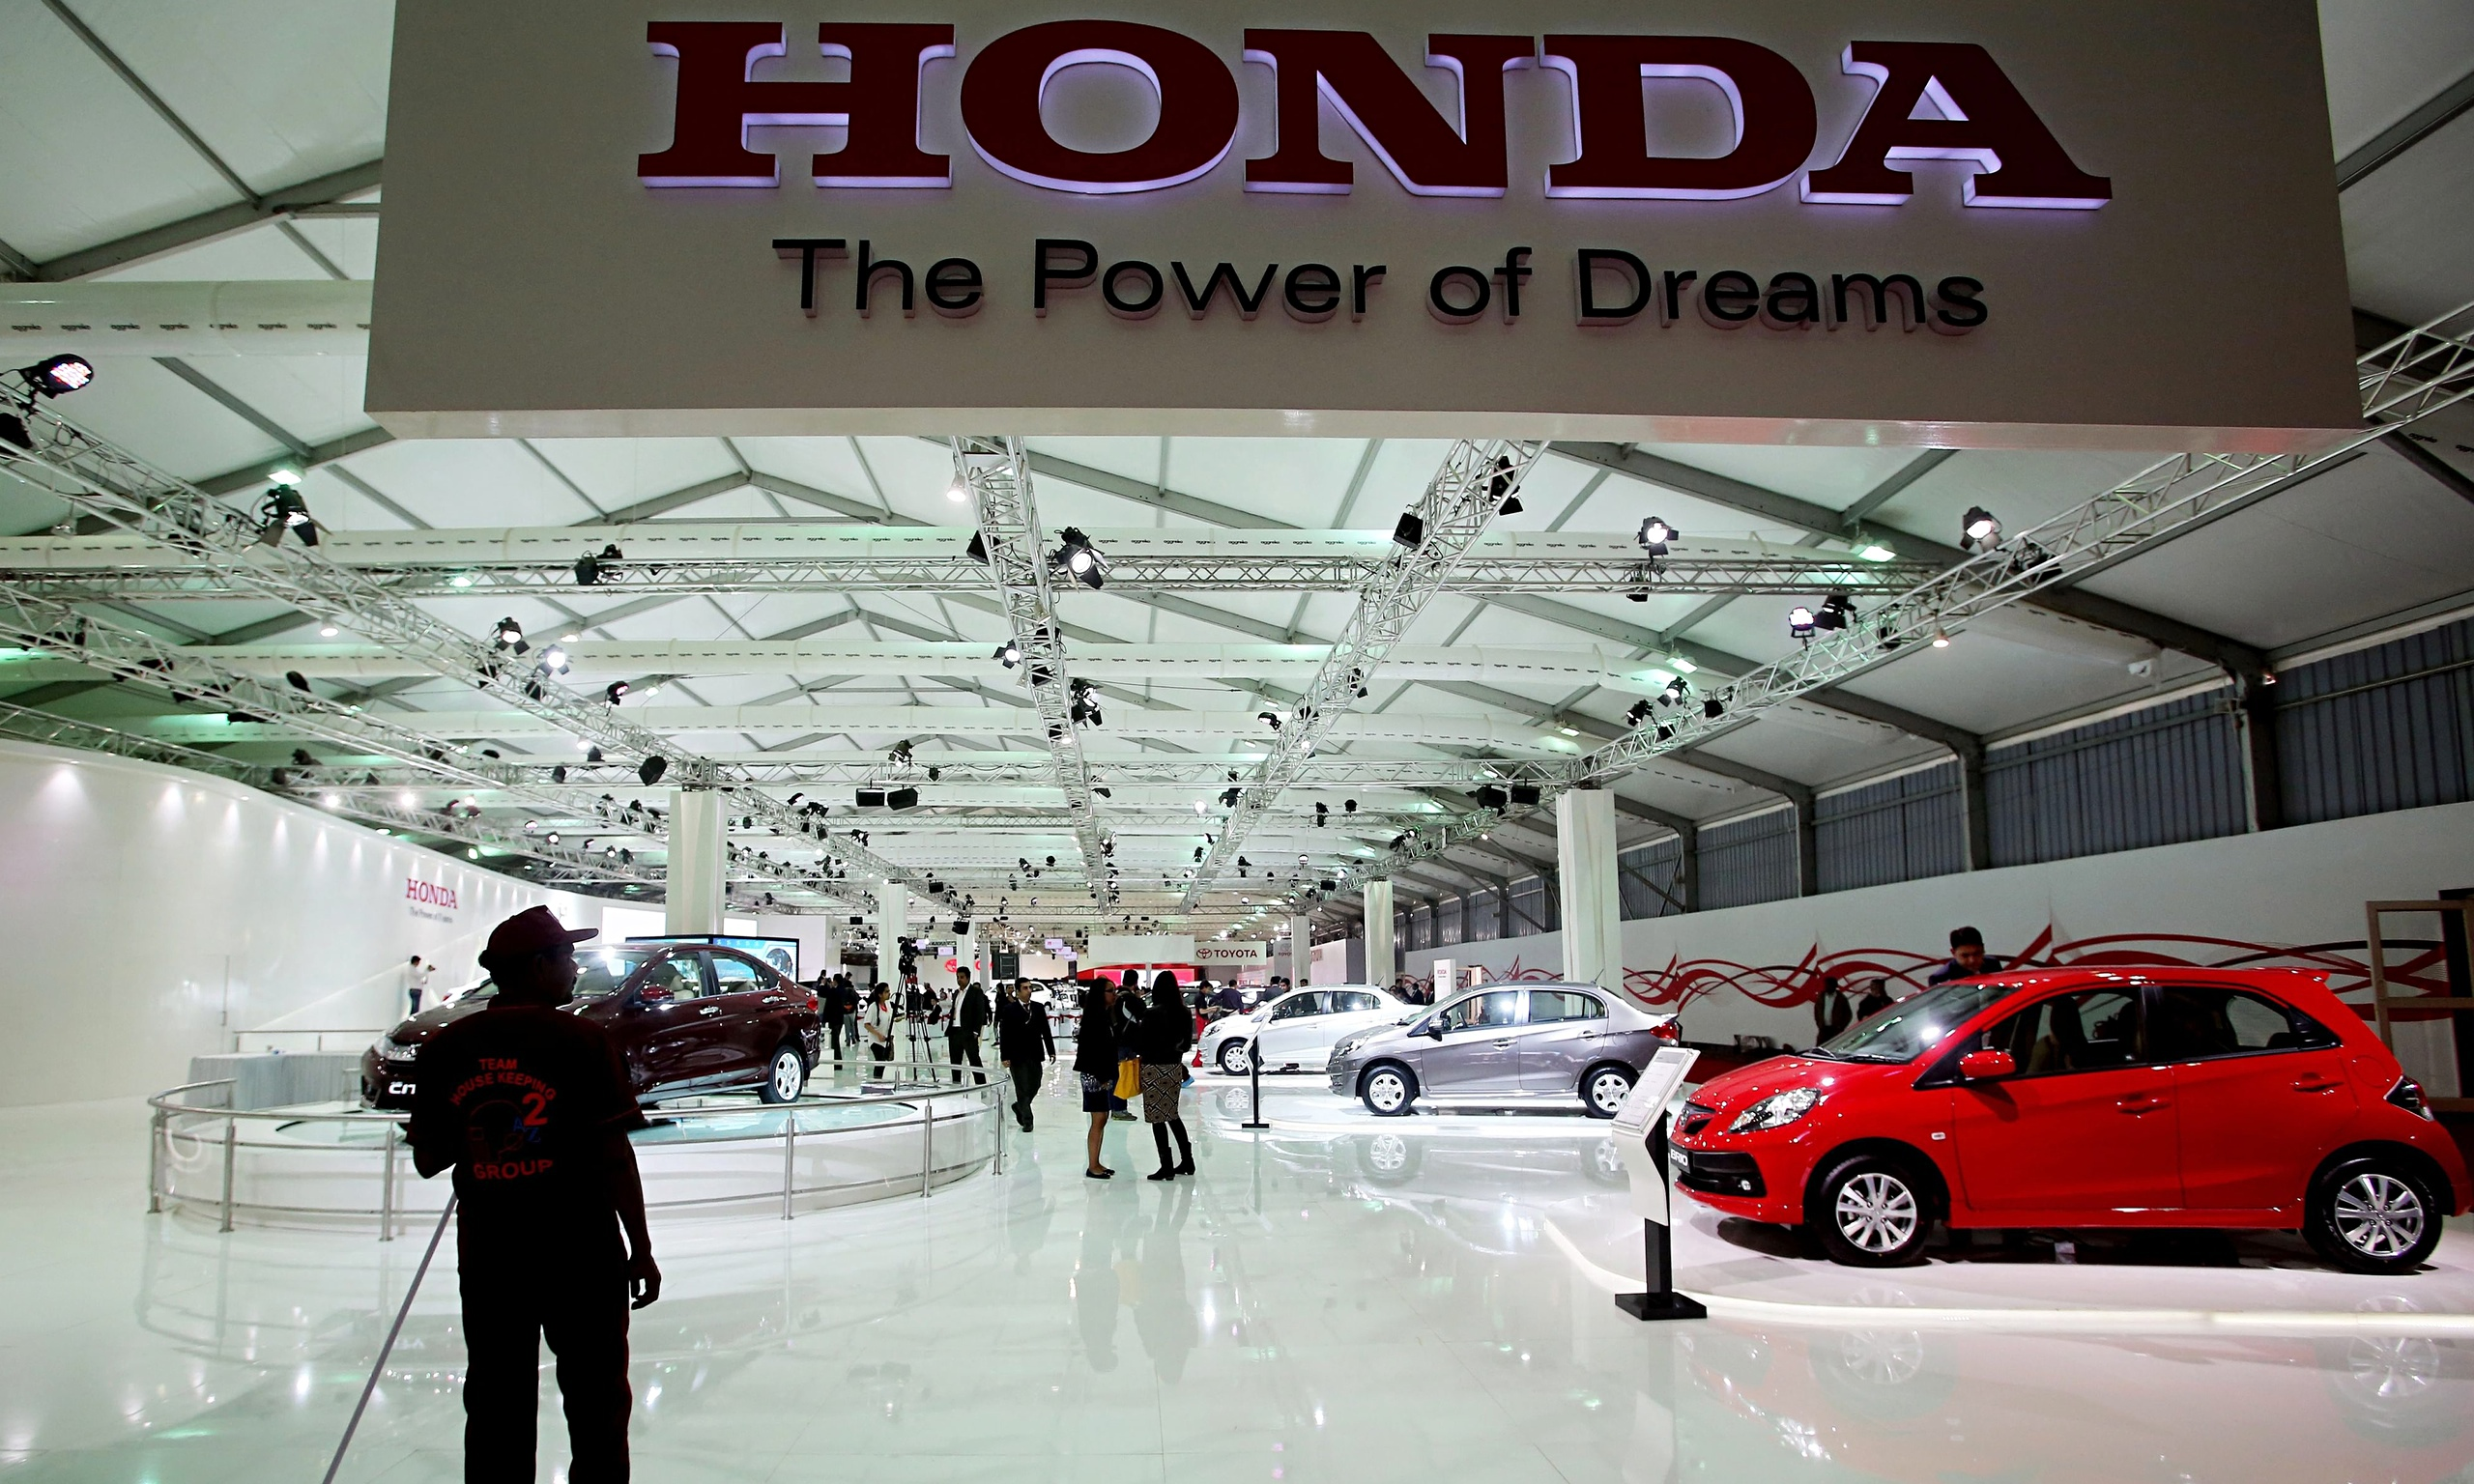 Honda recalls nearly 2m cars in airbag scare | Business | The Guardian